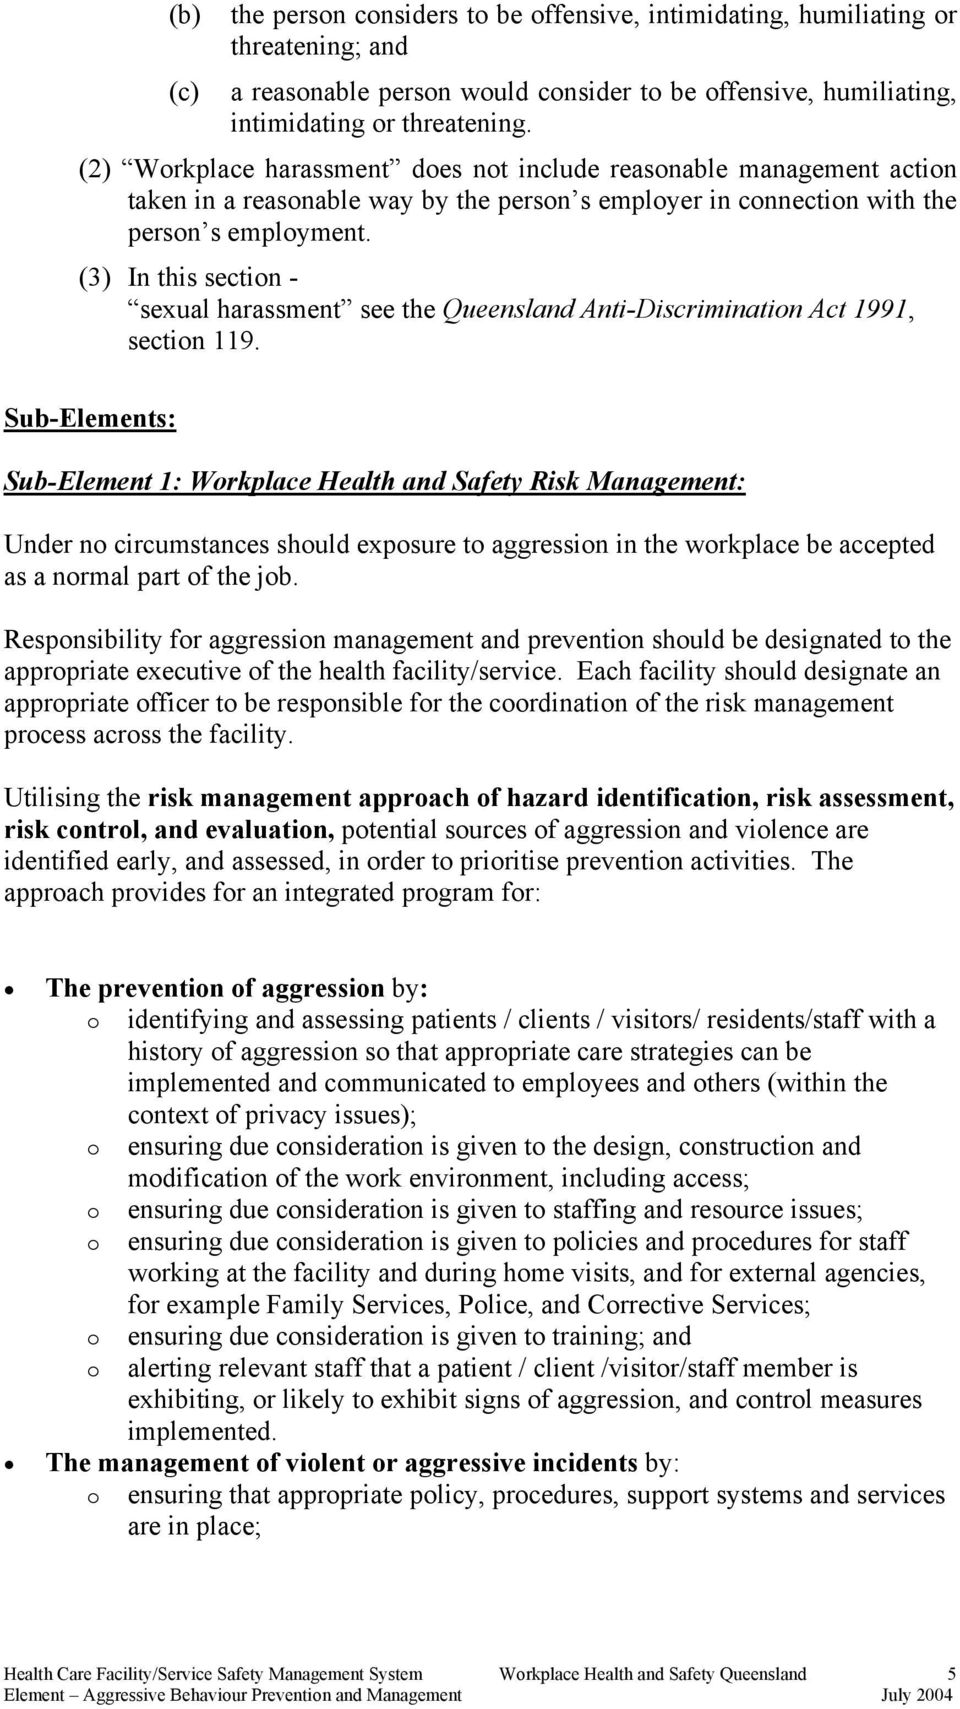 (3) In this section - sexual harassment see the Queensland Anti-Discrimination Act 1991, section 119.